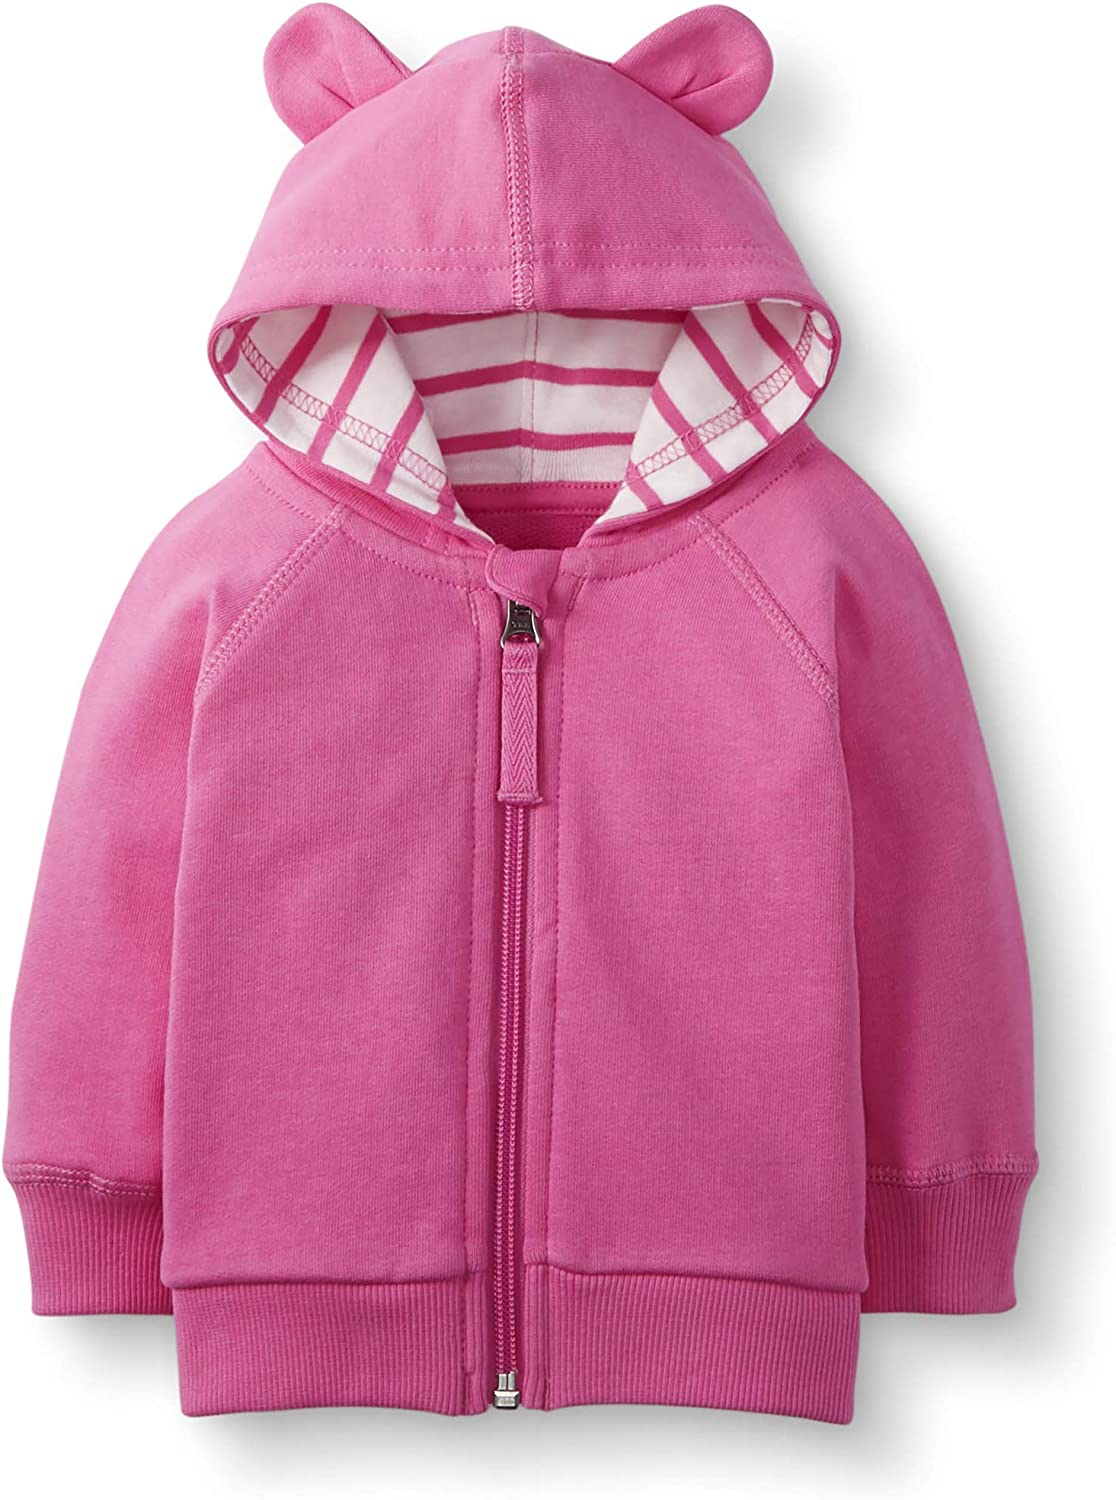 Hanna Andersson Baby//Toddler Bright Basics Bear Hoodie